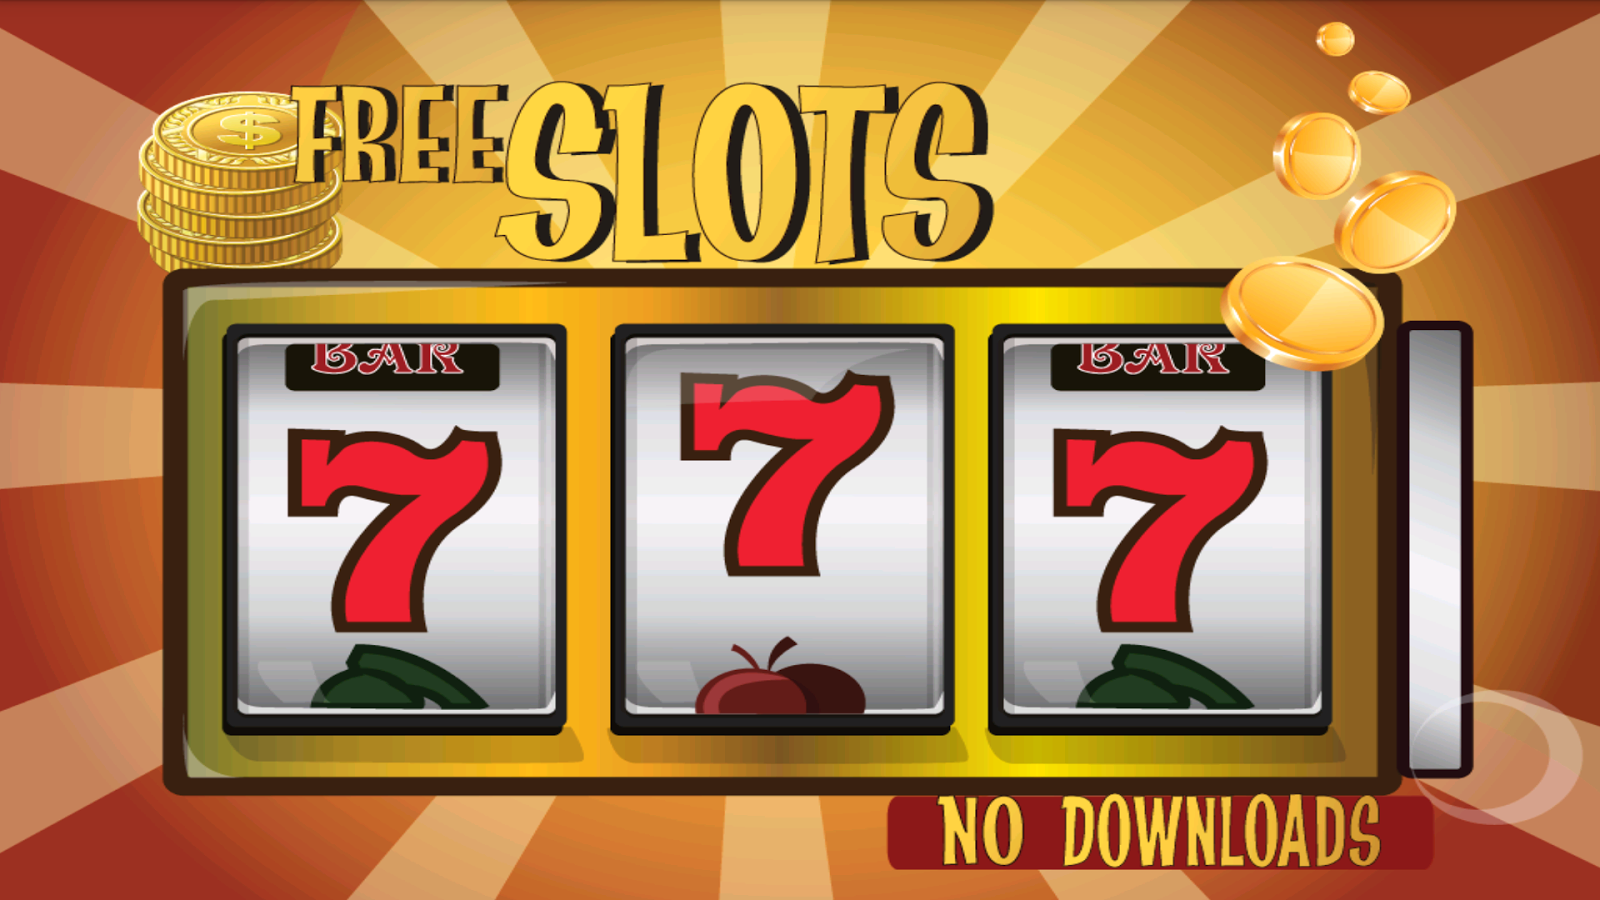 Play Free Casino Games No Downloads